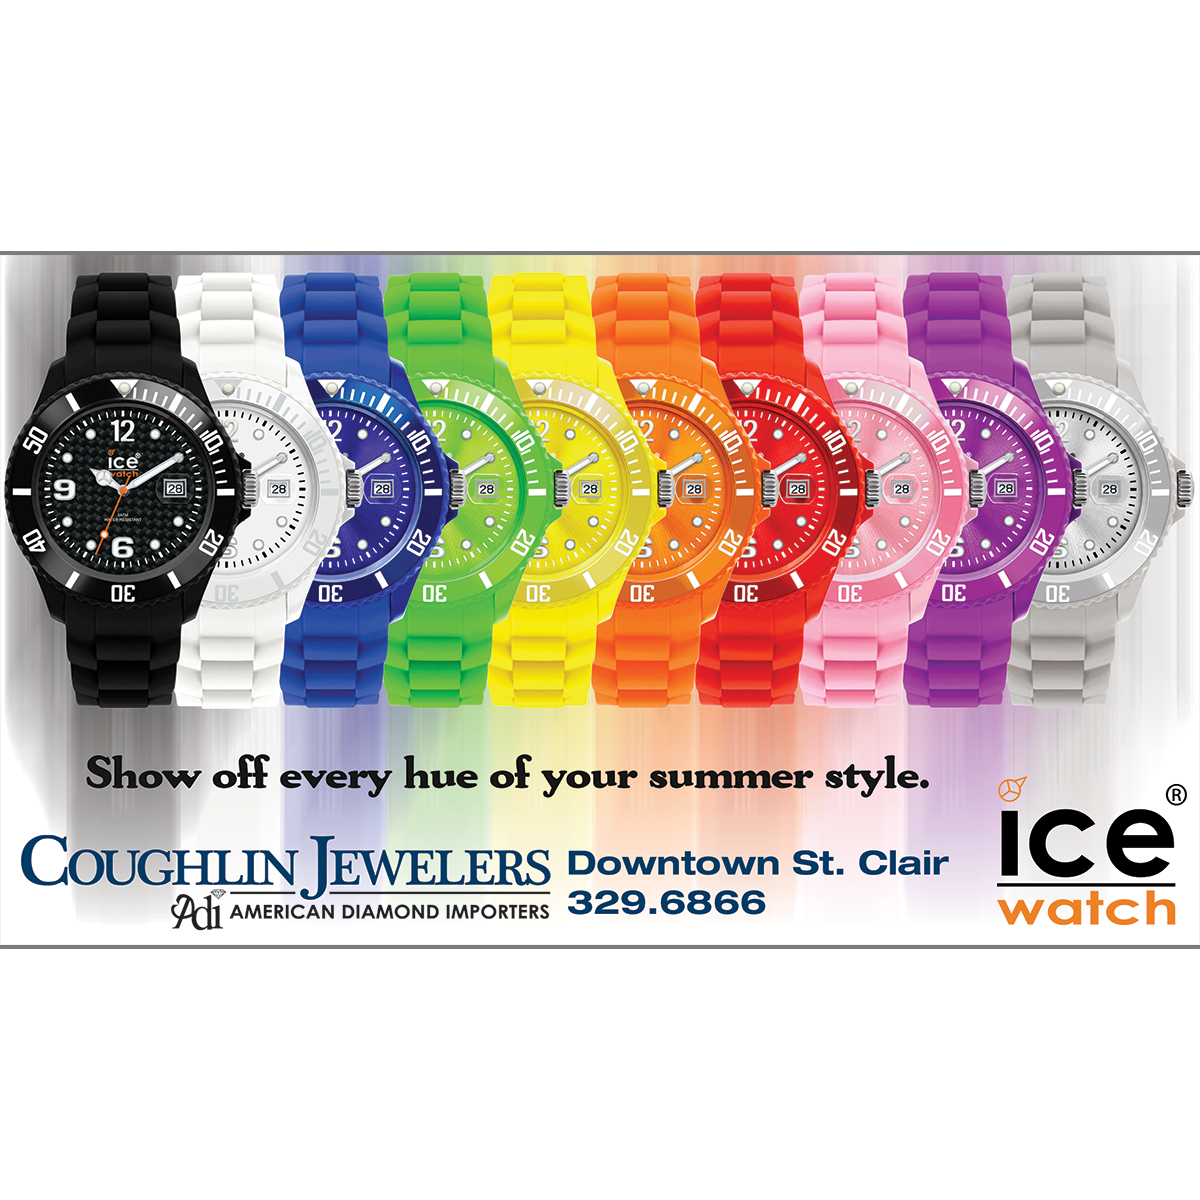 Coughlin Jewelers Ice Watch Ad